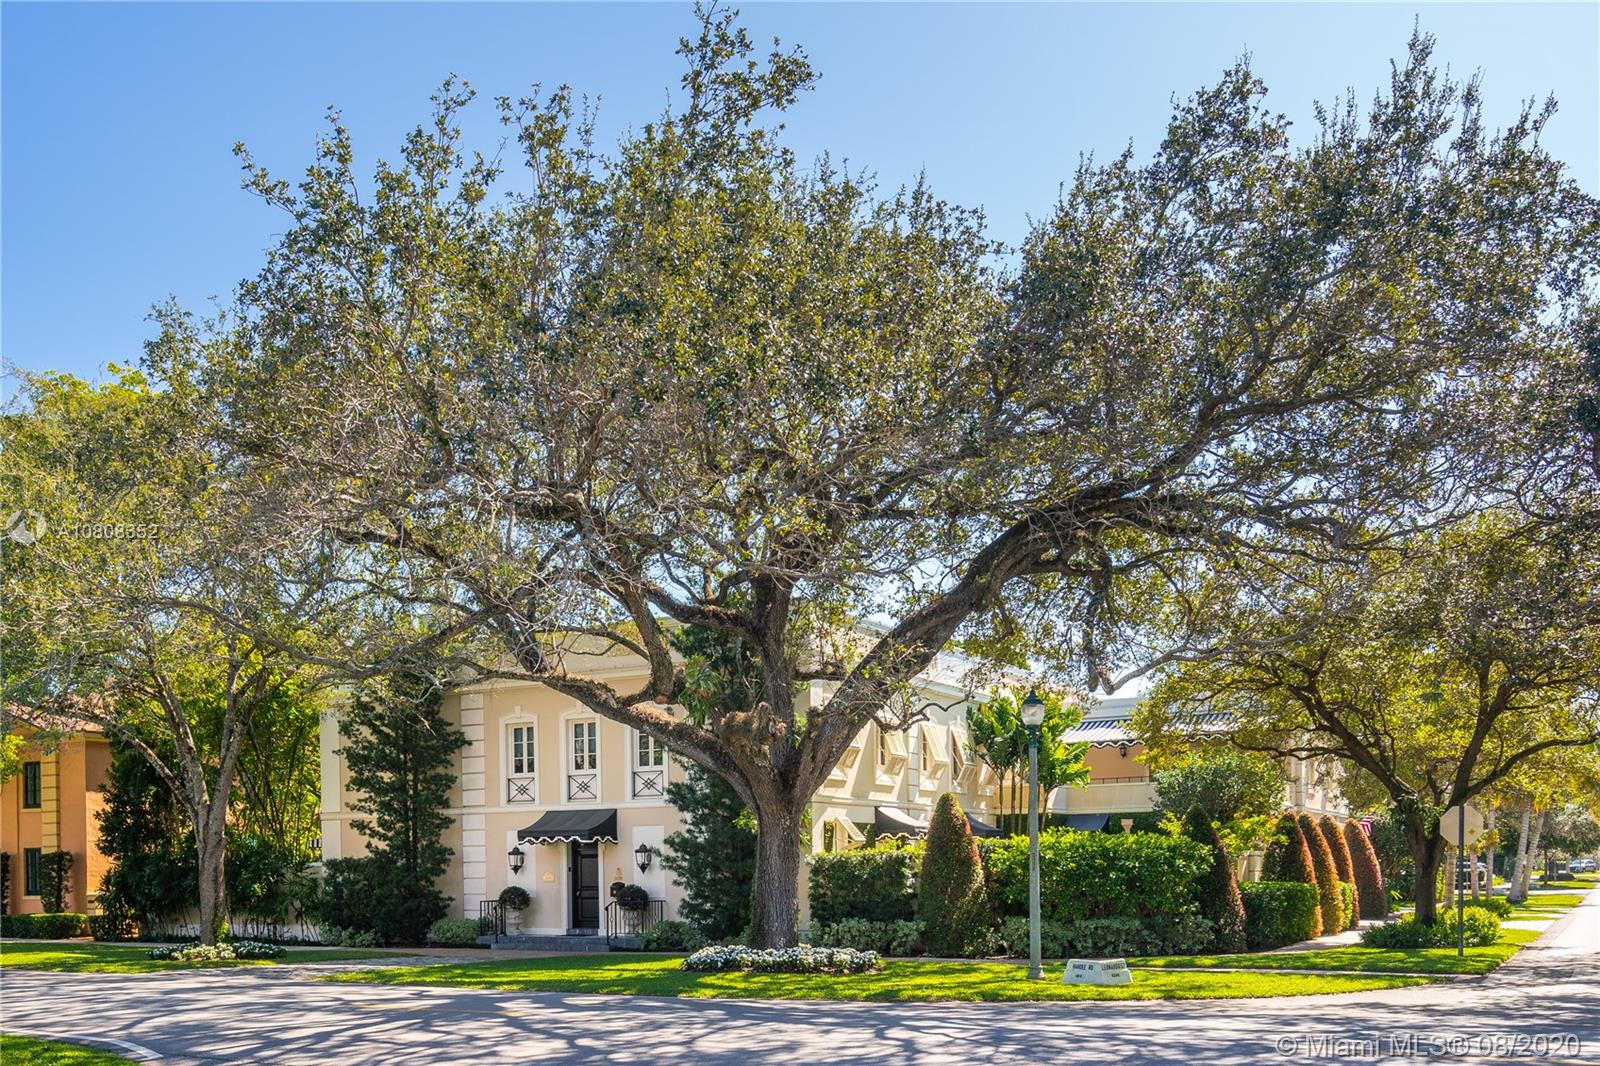 """This once in a lifetime landmark home, located in the historic French Village of Coral Gables, has hosted a President & a Governor during its 95-year existence. Designed by renowned architect, Philip L Goodwin, this home reflects a classical French design. A substantial restoration in 2000 maintained the home's historic integrity while adding the most modern of amenities. The quality of the superior custom crafted interiors is exquisite. The gardens are spectacular & each angle provides an unsurpassed vignette of a refined & cultured life. This aptly named home """"La Belle Vie"""" translates to """"The Good Life"""" which is perfectly befitting this glorious property. This lovingly tended home is a treasure. A Very Special Home"""